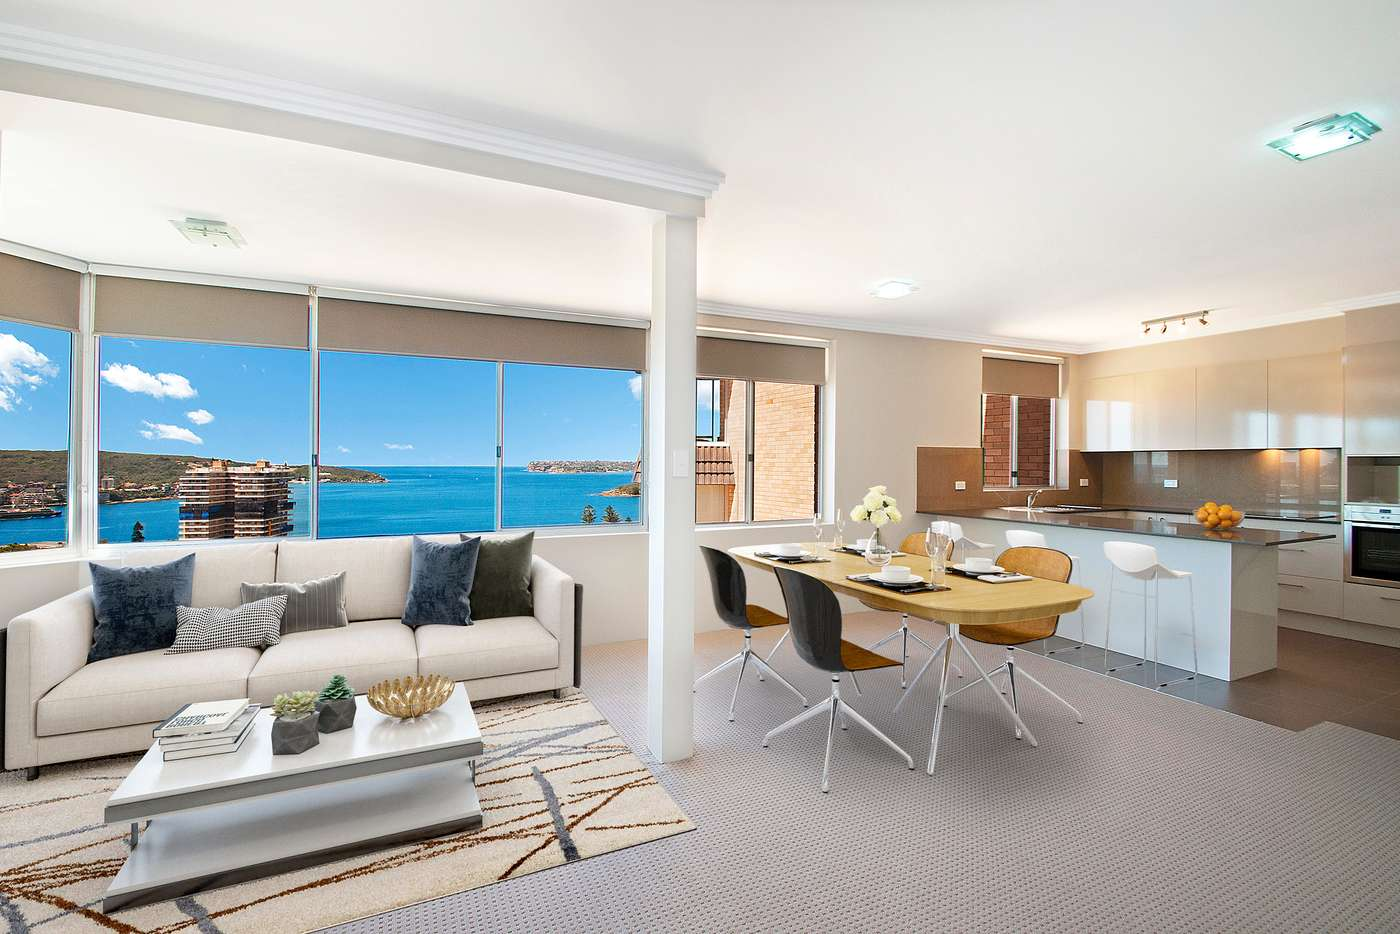 Main view of Homely apartment listing, 4/47 Fairlight Street, Fairlight NSW 2094